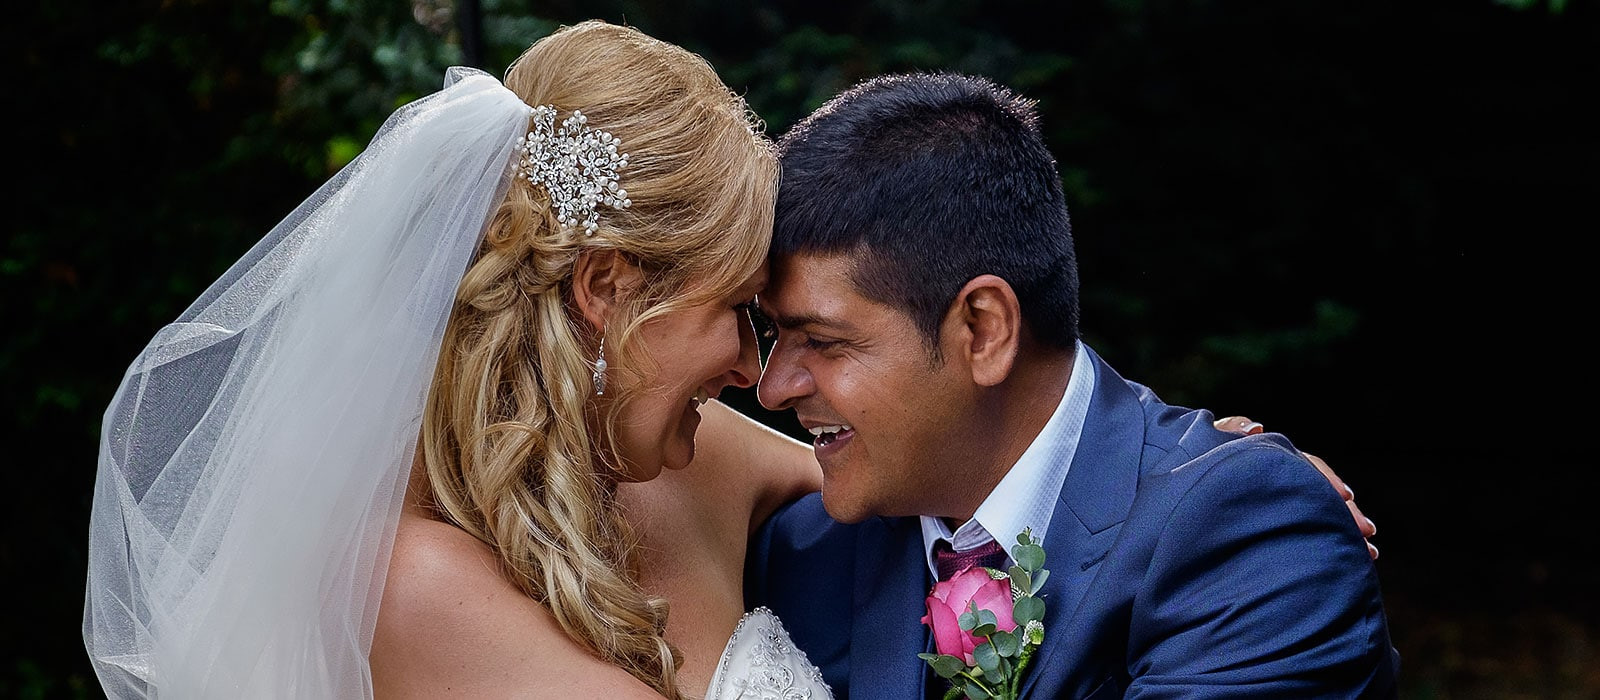 You are currently viewing Kings Chapel Amersham wedding photos | Helen and Harj